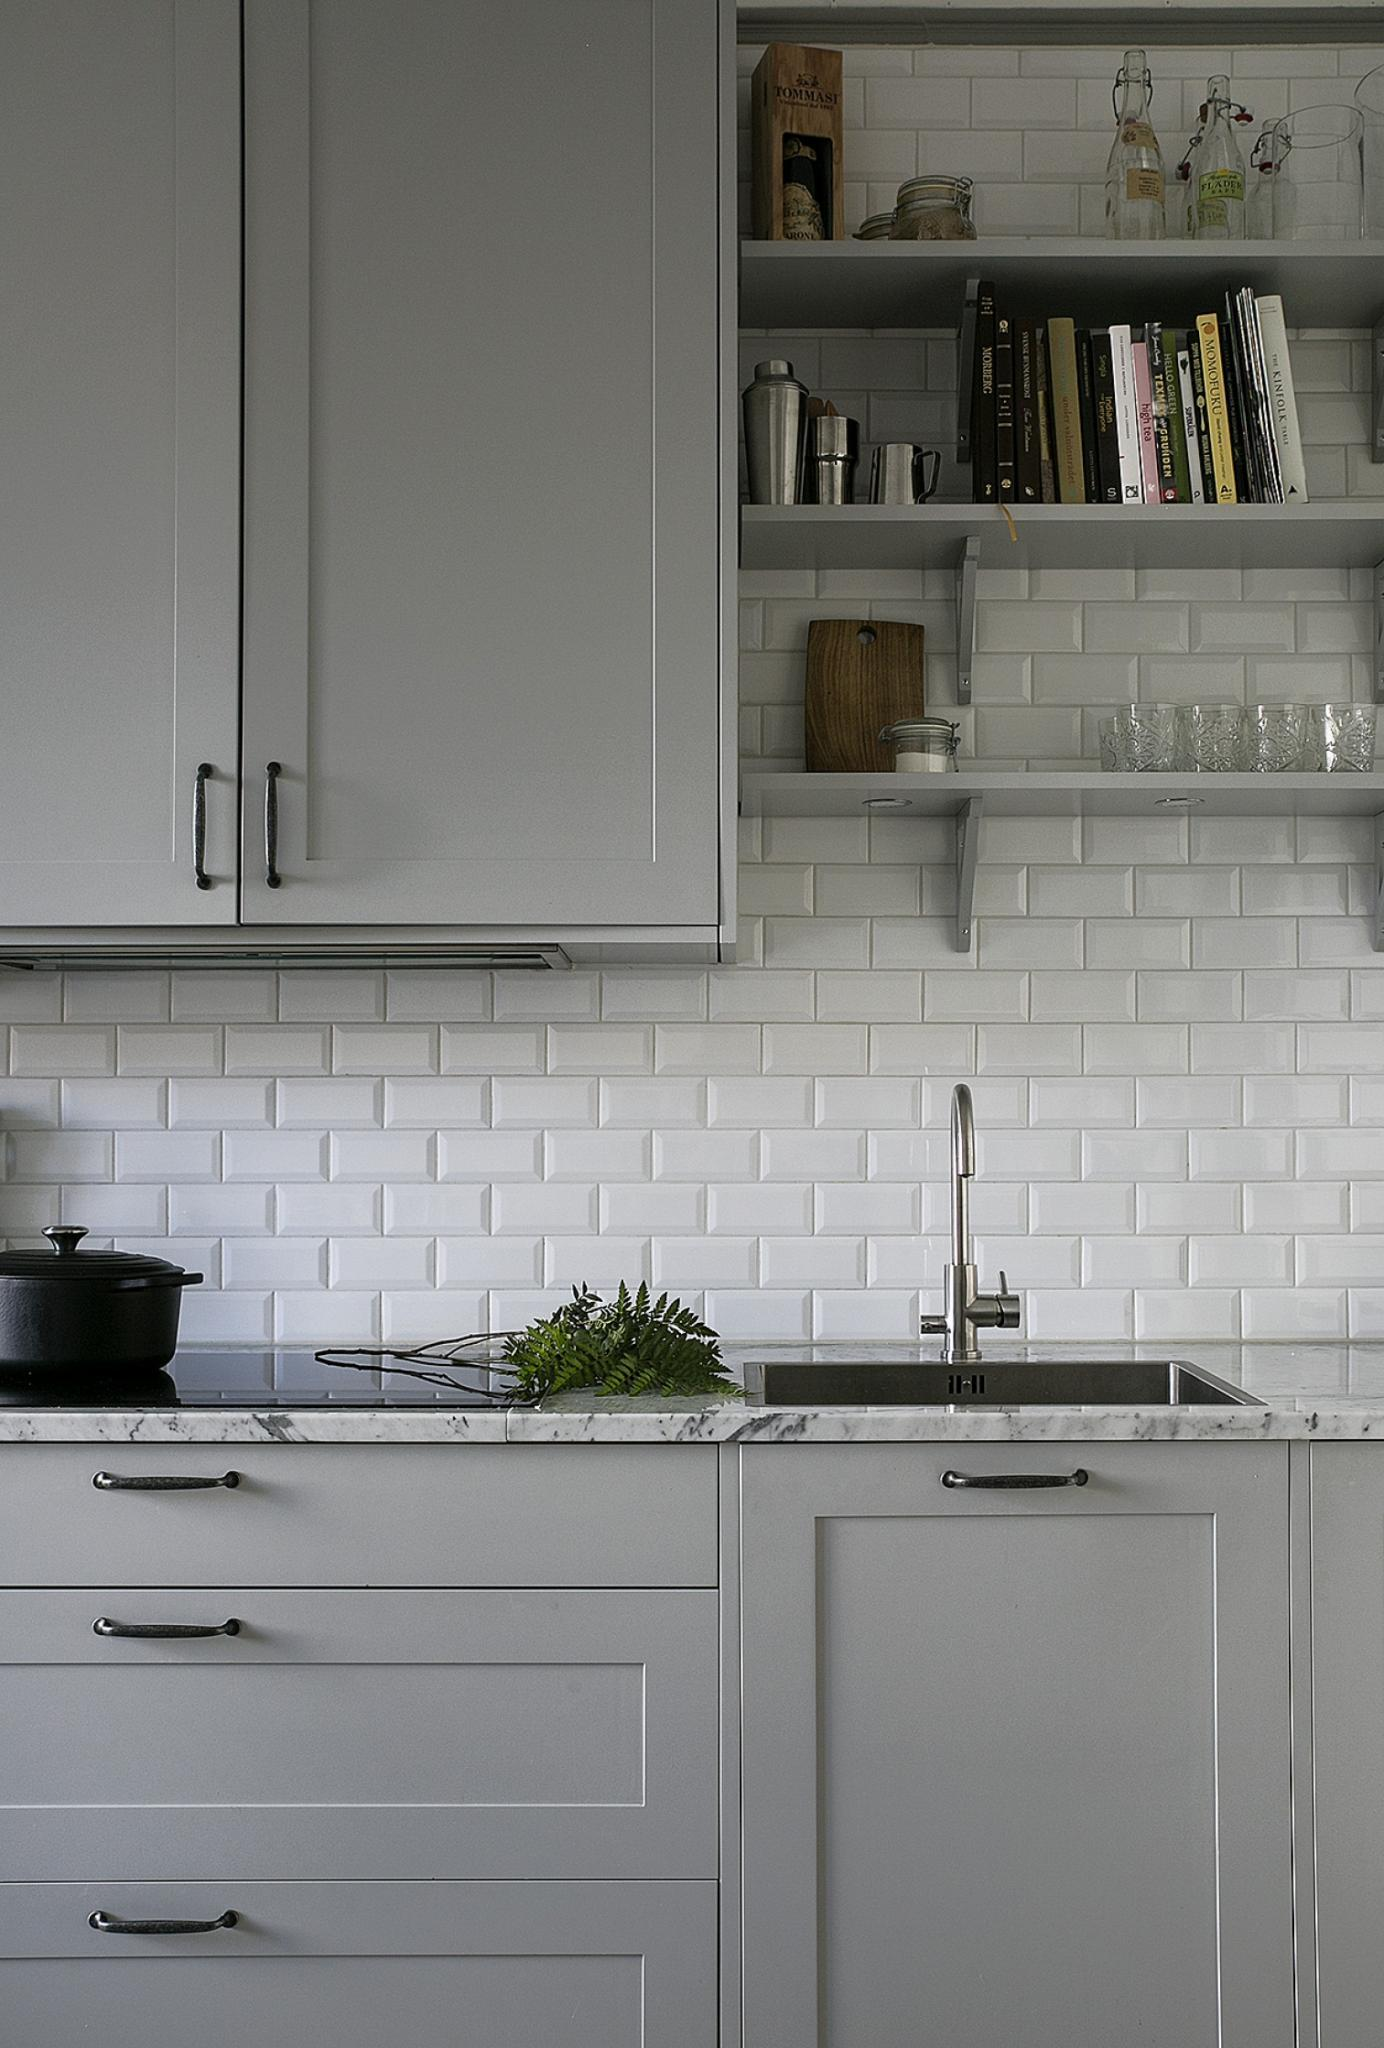 10 inspiring kitchens in grey via coco lapine design blog - Inspiring Kitchen